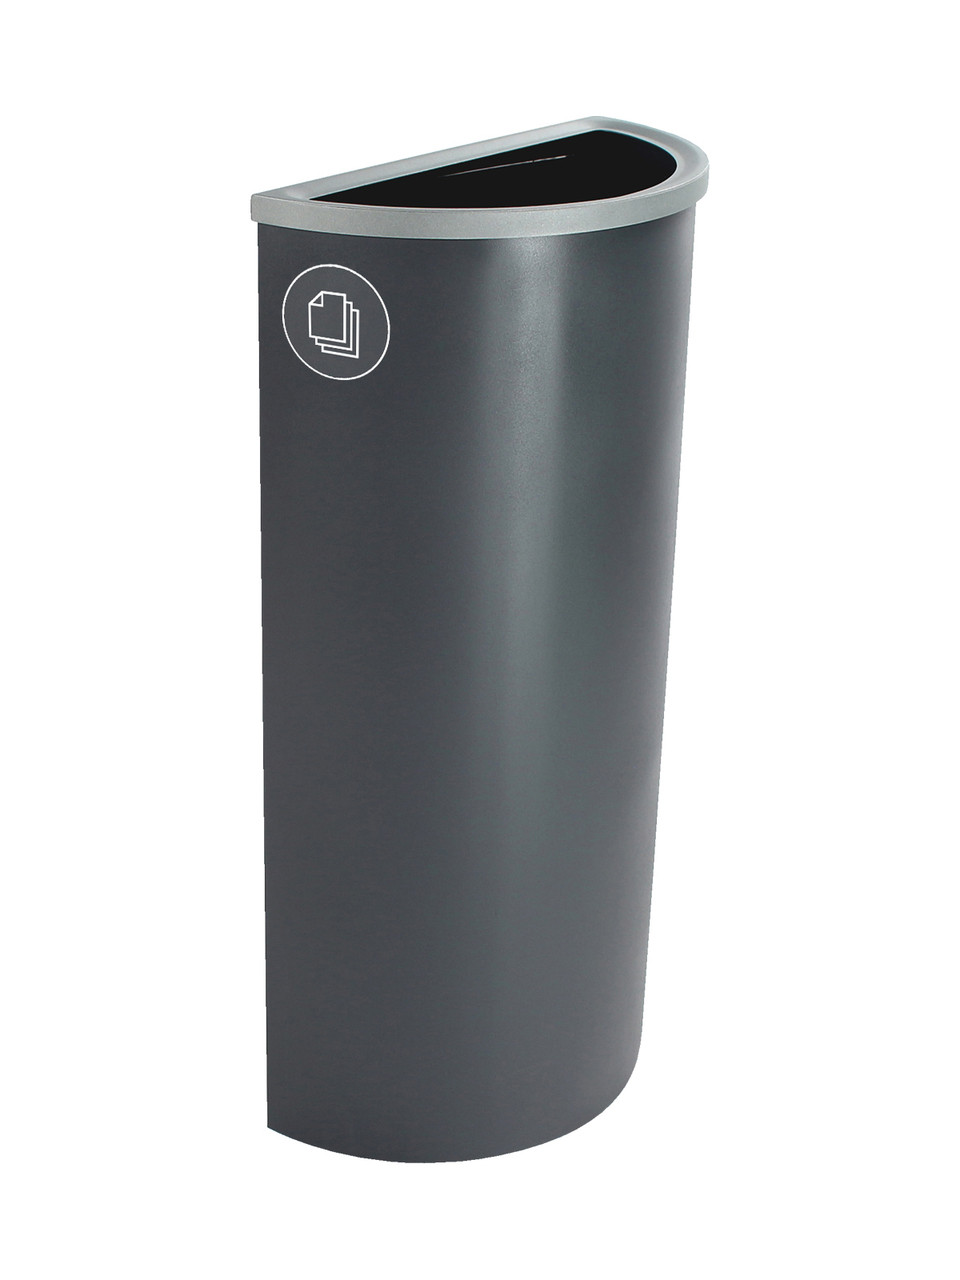 8 Gallon Steel Spectrum Half Round Paper Collector Recycle Bin Gray 8107027-4